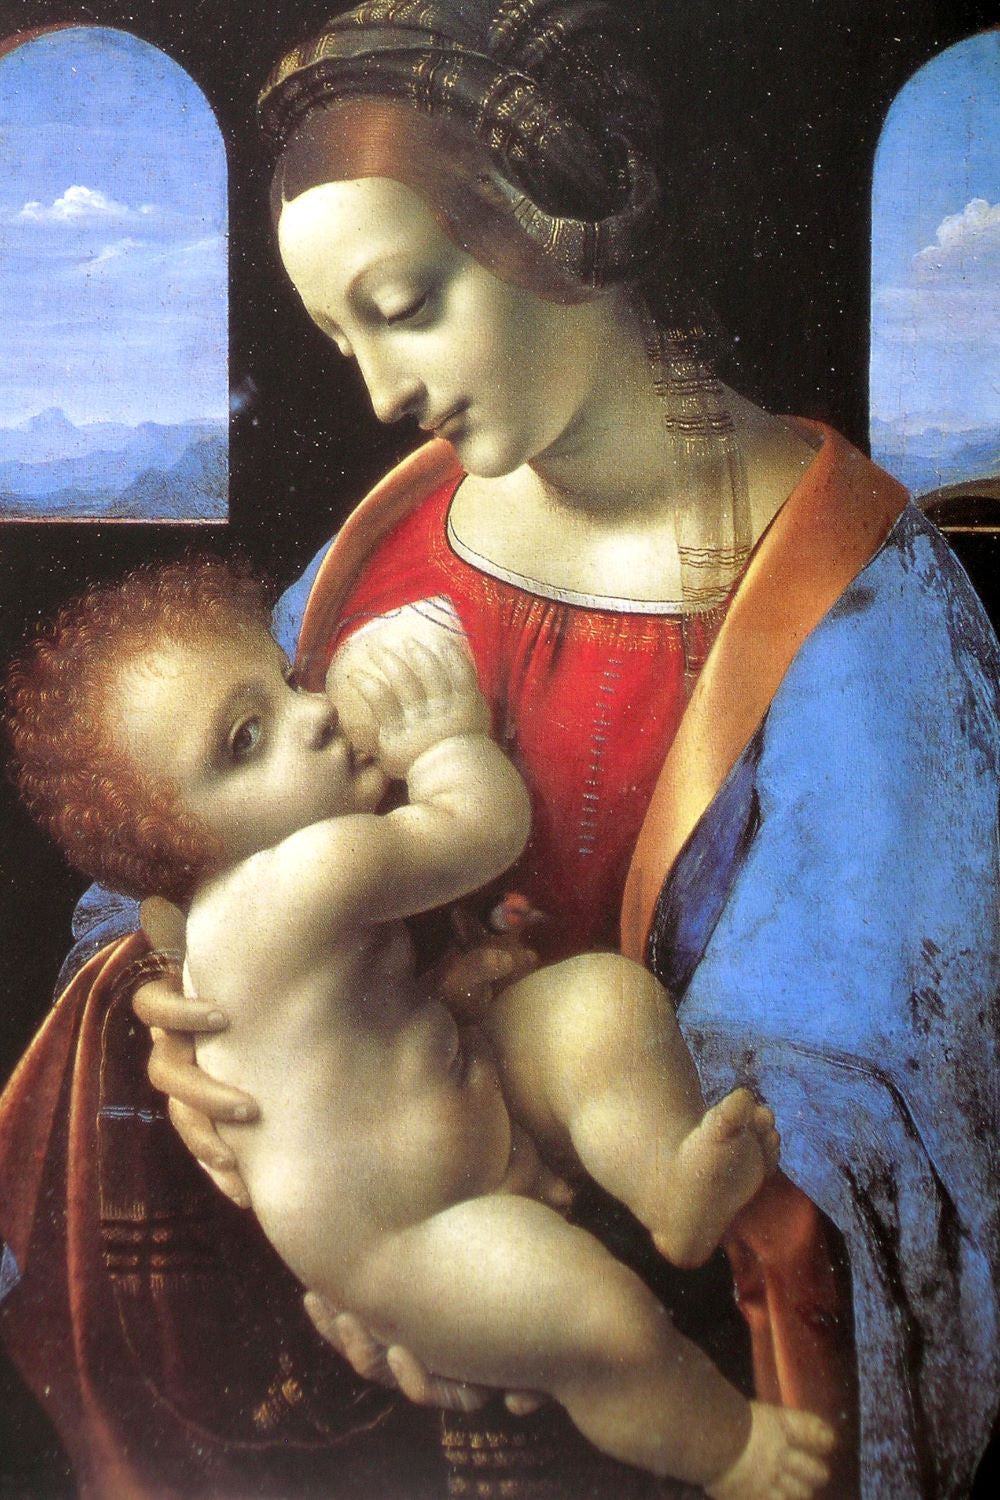 Renaissance Art — Under 2000 | Buy Posters, Frames, Canvas, Digital Art & Large Size Prints